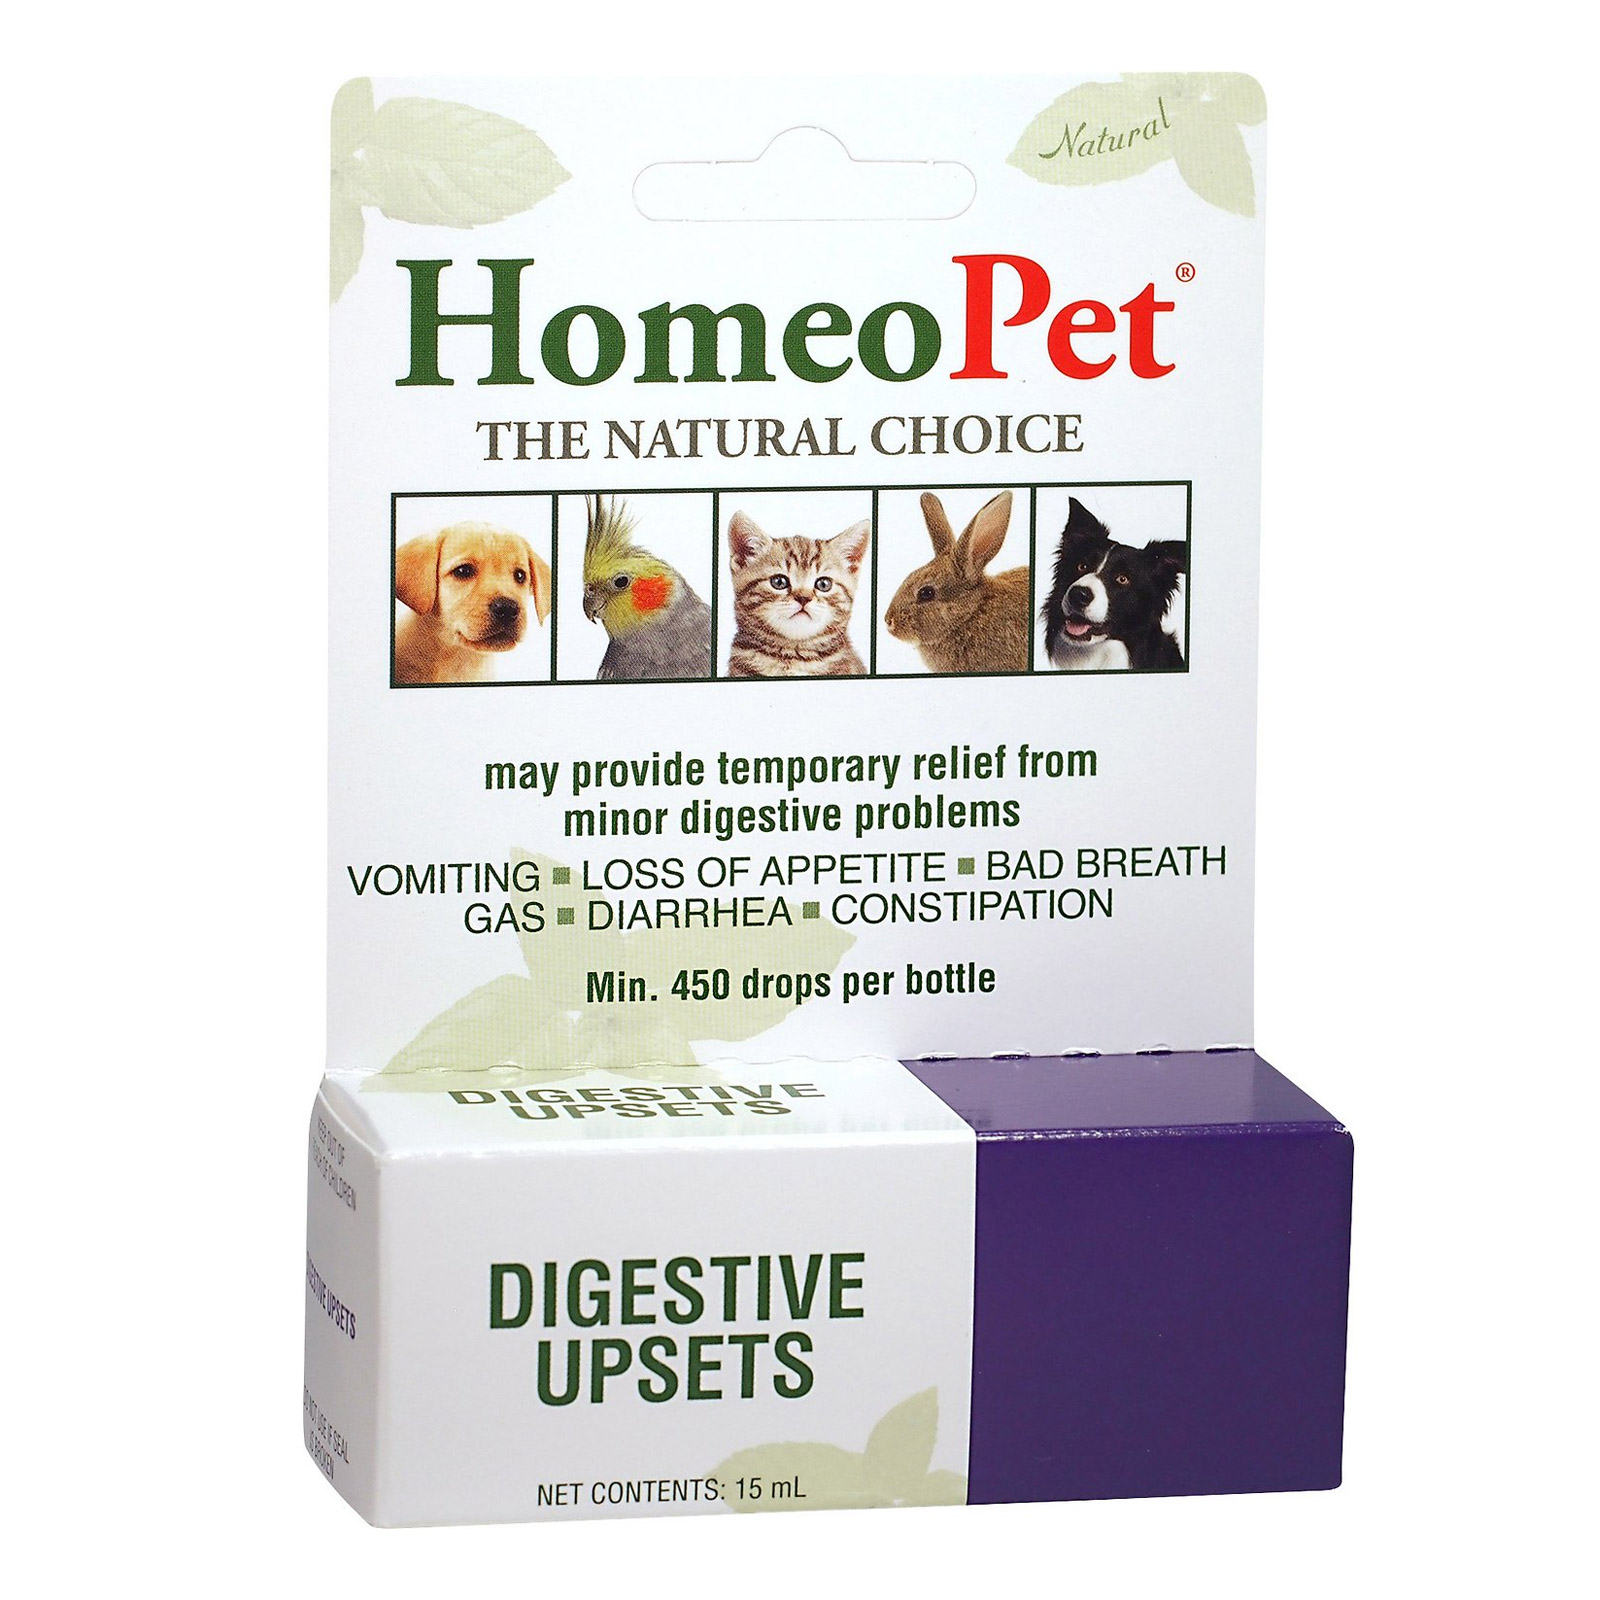 Digestive Upsets For Dogs/Cats (214589)